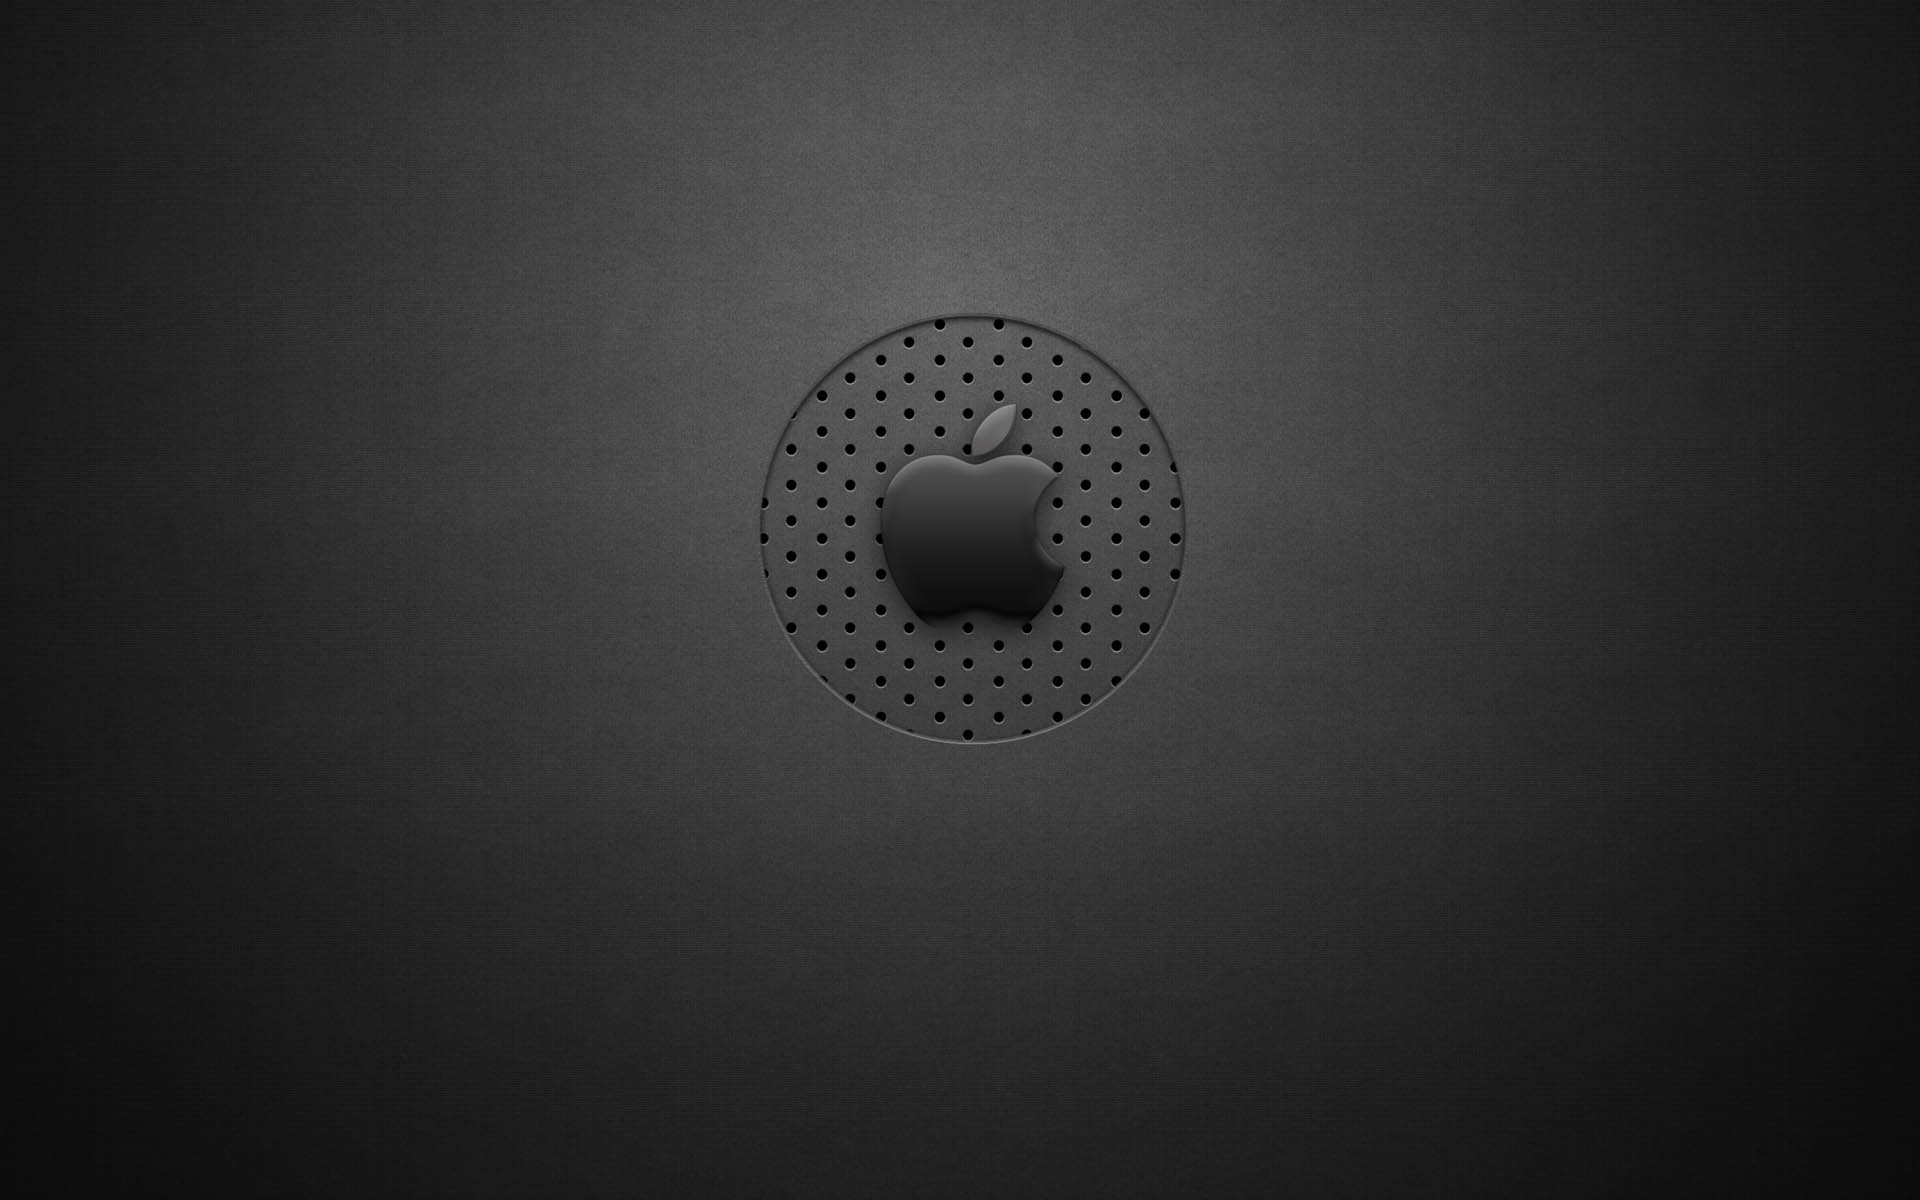 grey apple logo wallpapers 11684 1920x1200